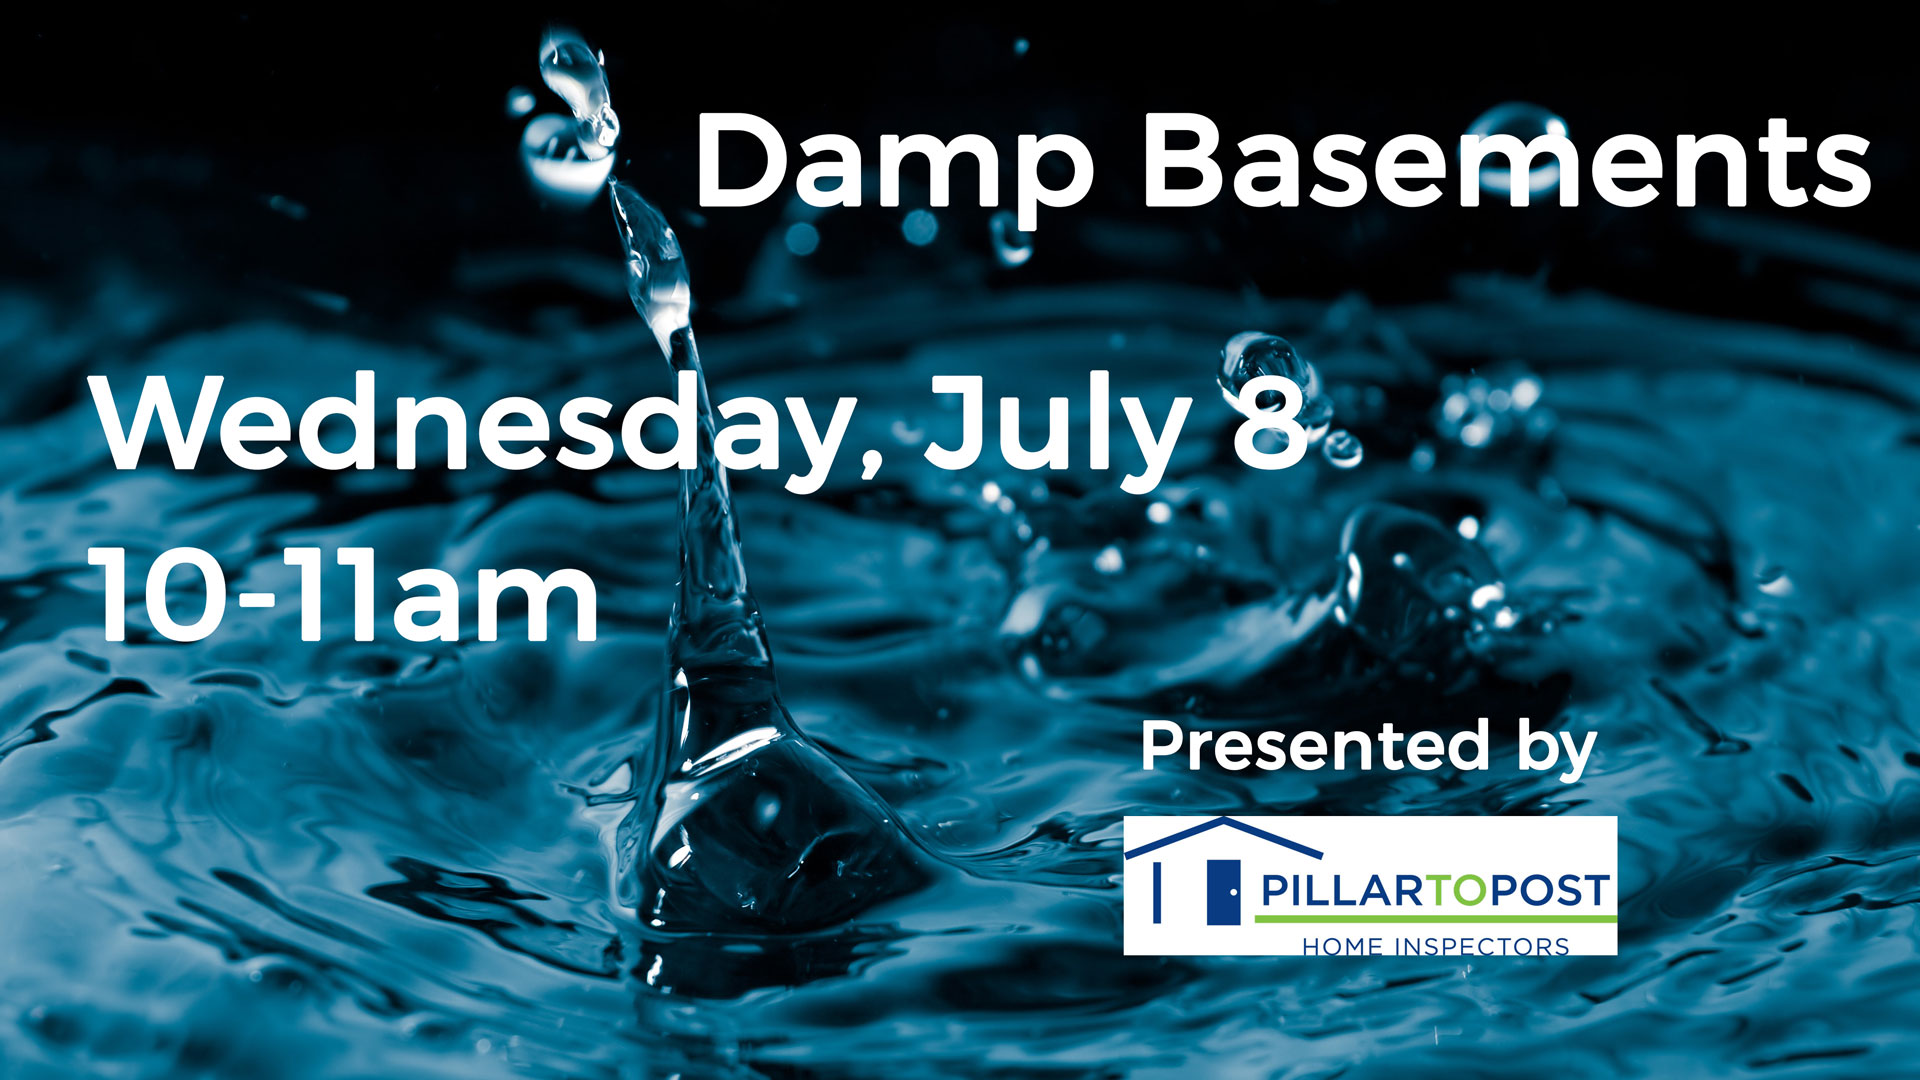 Damp Basements Class, July 8